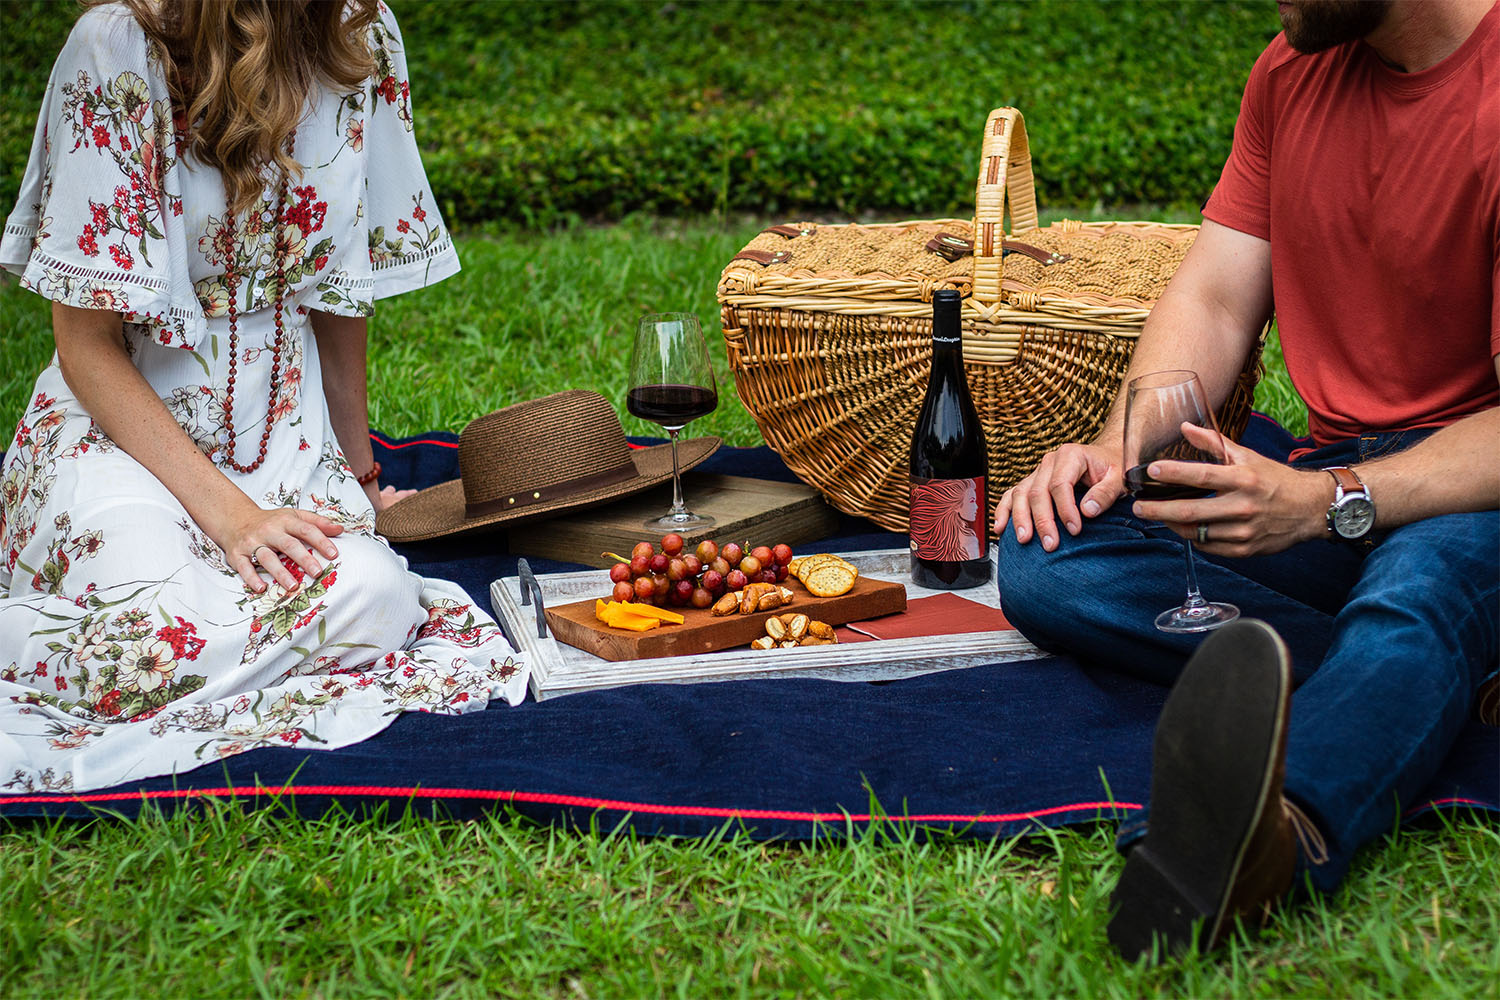 picnic, picnic wineries, California picnic wineries, the best places for a picnic at a winery, best wineries for a picnic in California, best wineries for a picnic, where to picnic and drink wine, Sonoma County wine, California wine, California Wineries, The Press